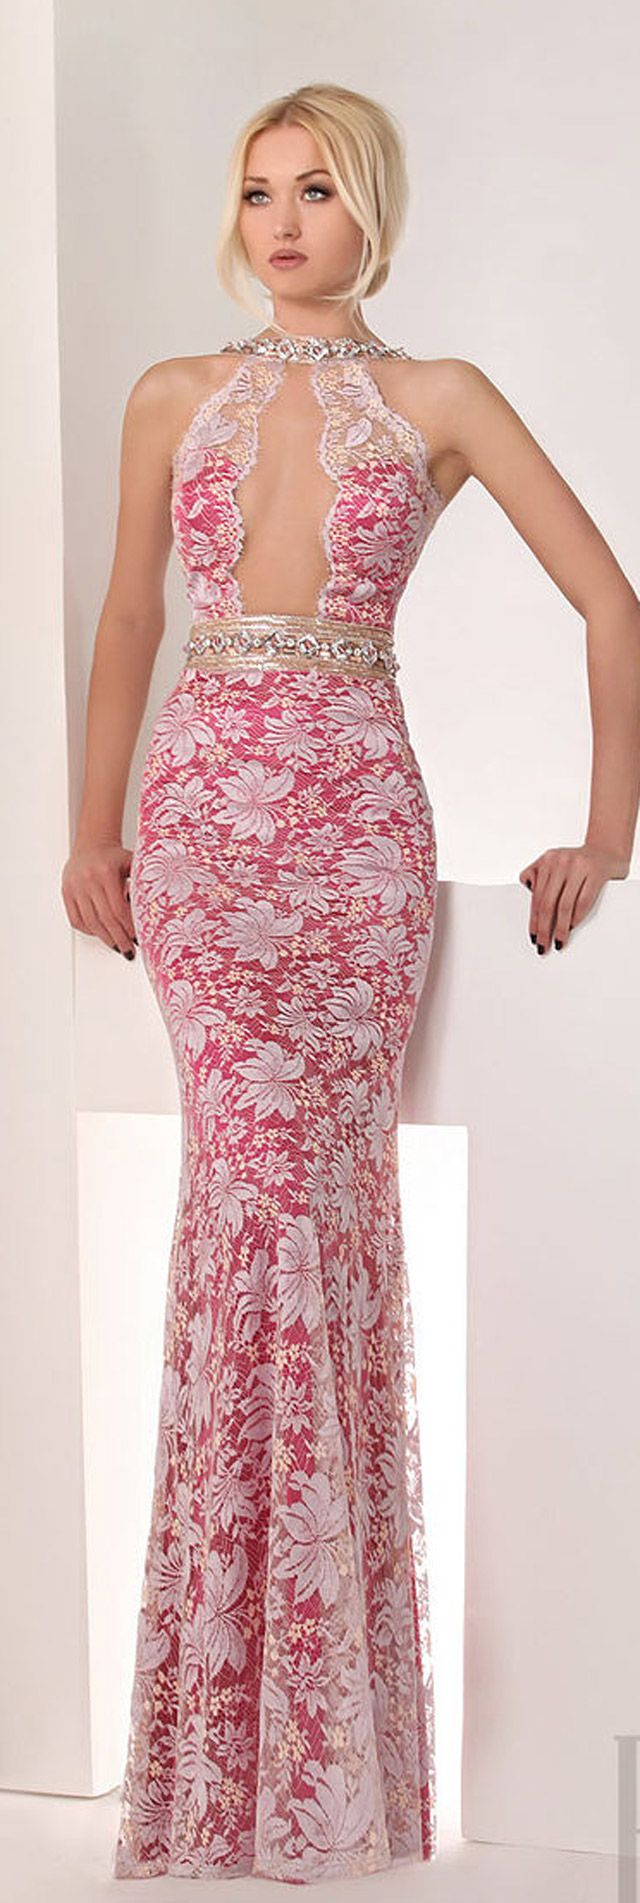 322 best My Dress images on Pinterest | Party outfits, Party fashion ...